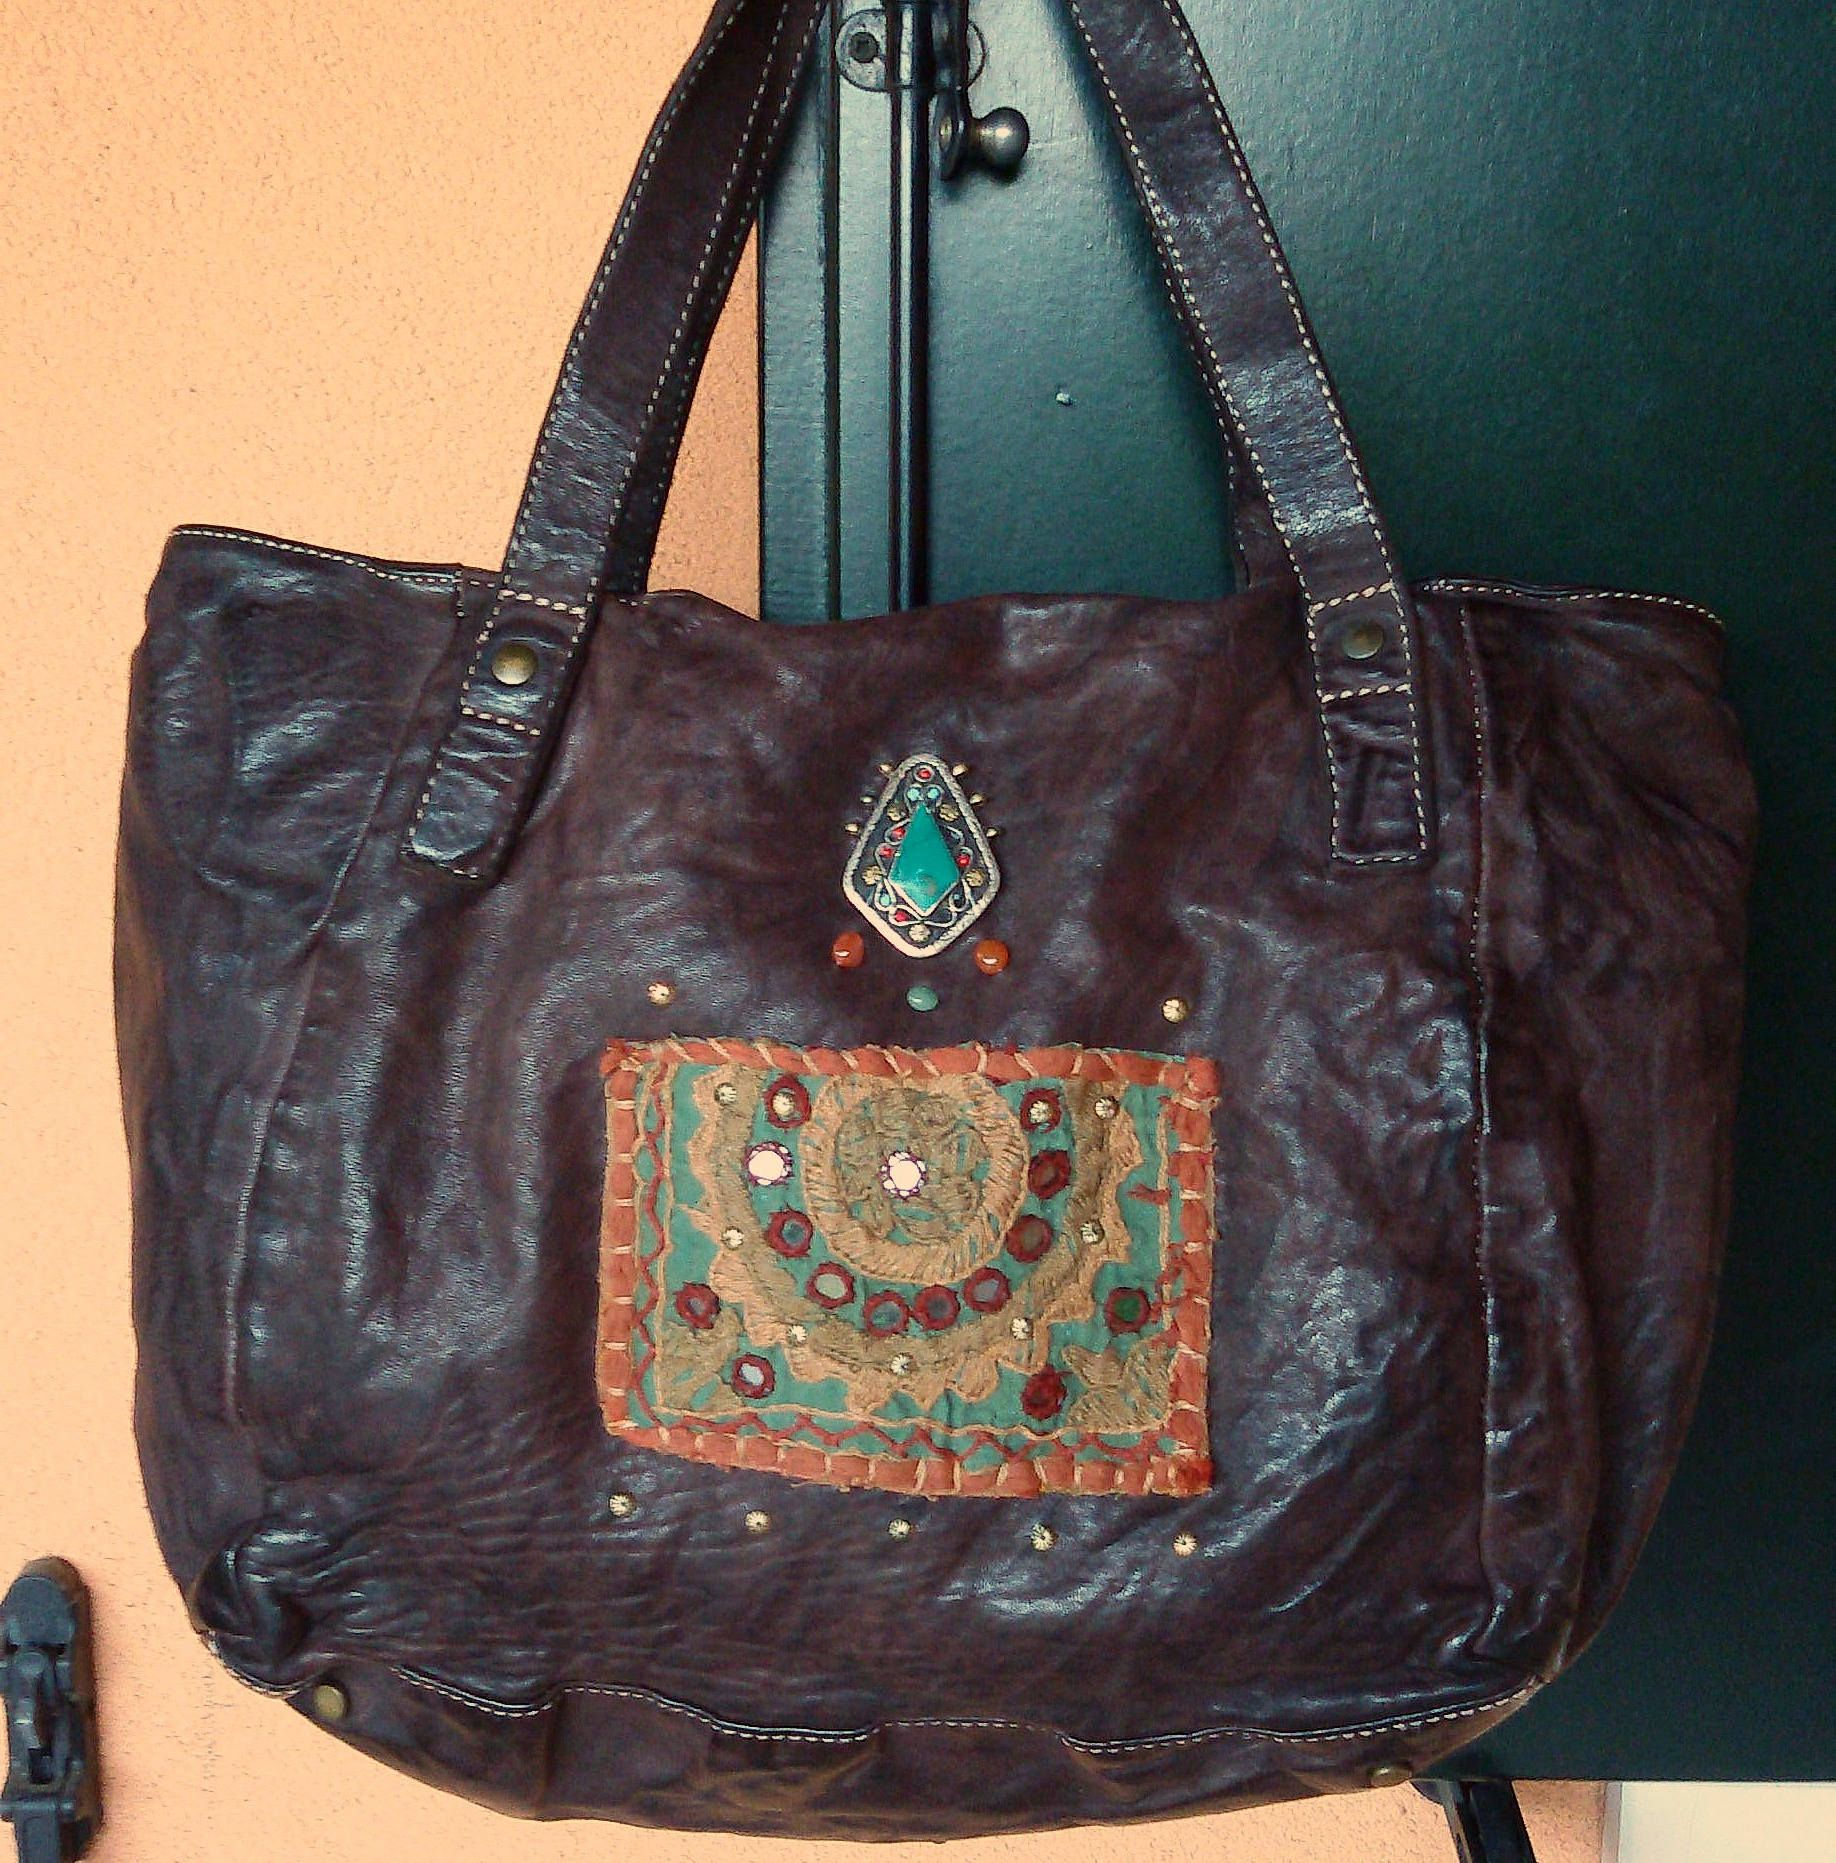 Photo of Borsa stile Vintage di pelle lavata con manici, color testa di moro, made in Italy con decorazione etnica Banjara e Kuchi, Bohochic, ibiza